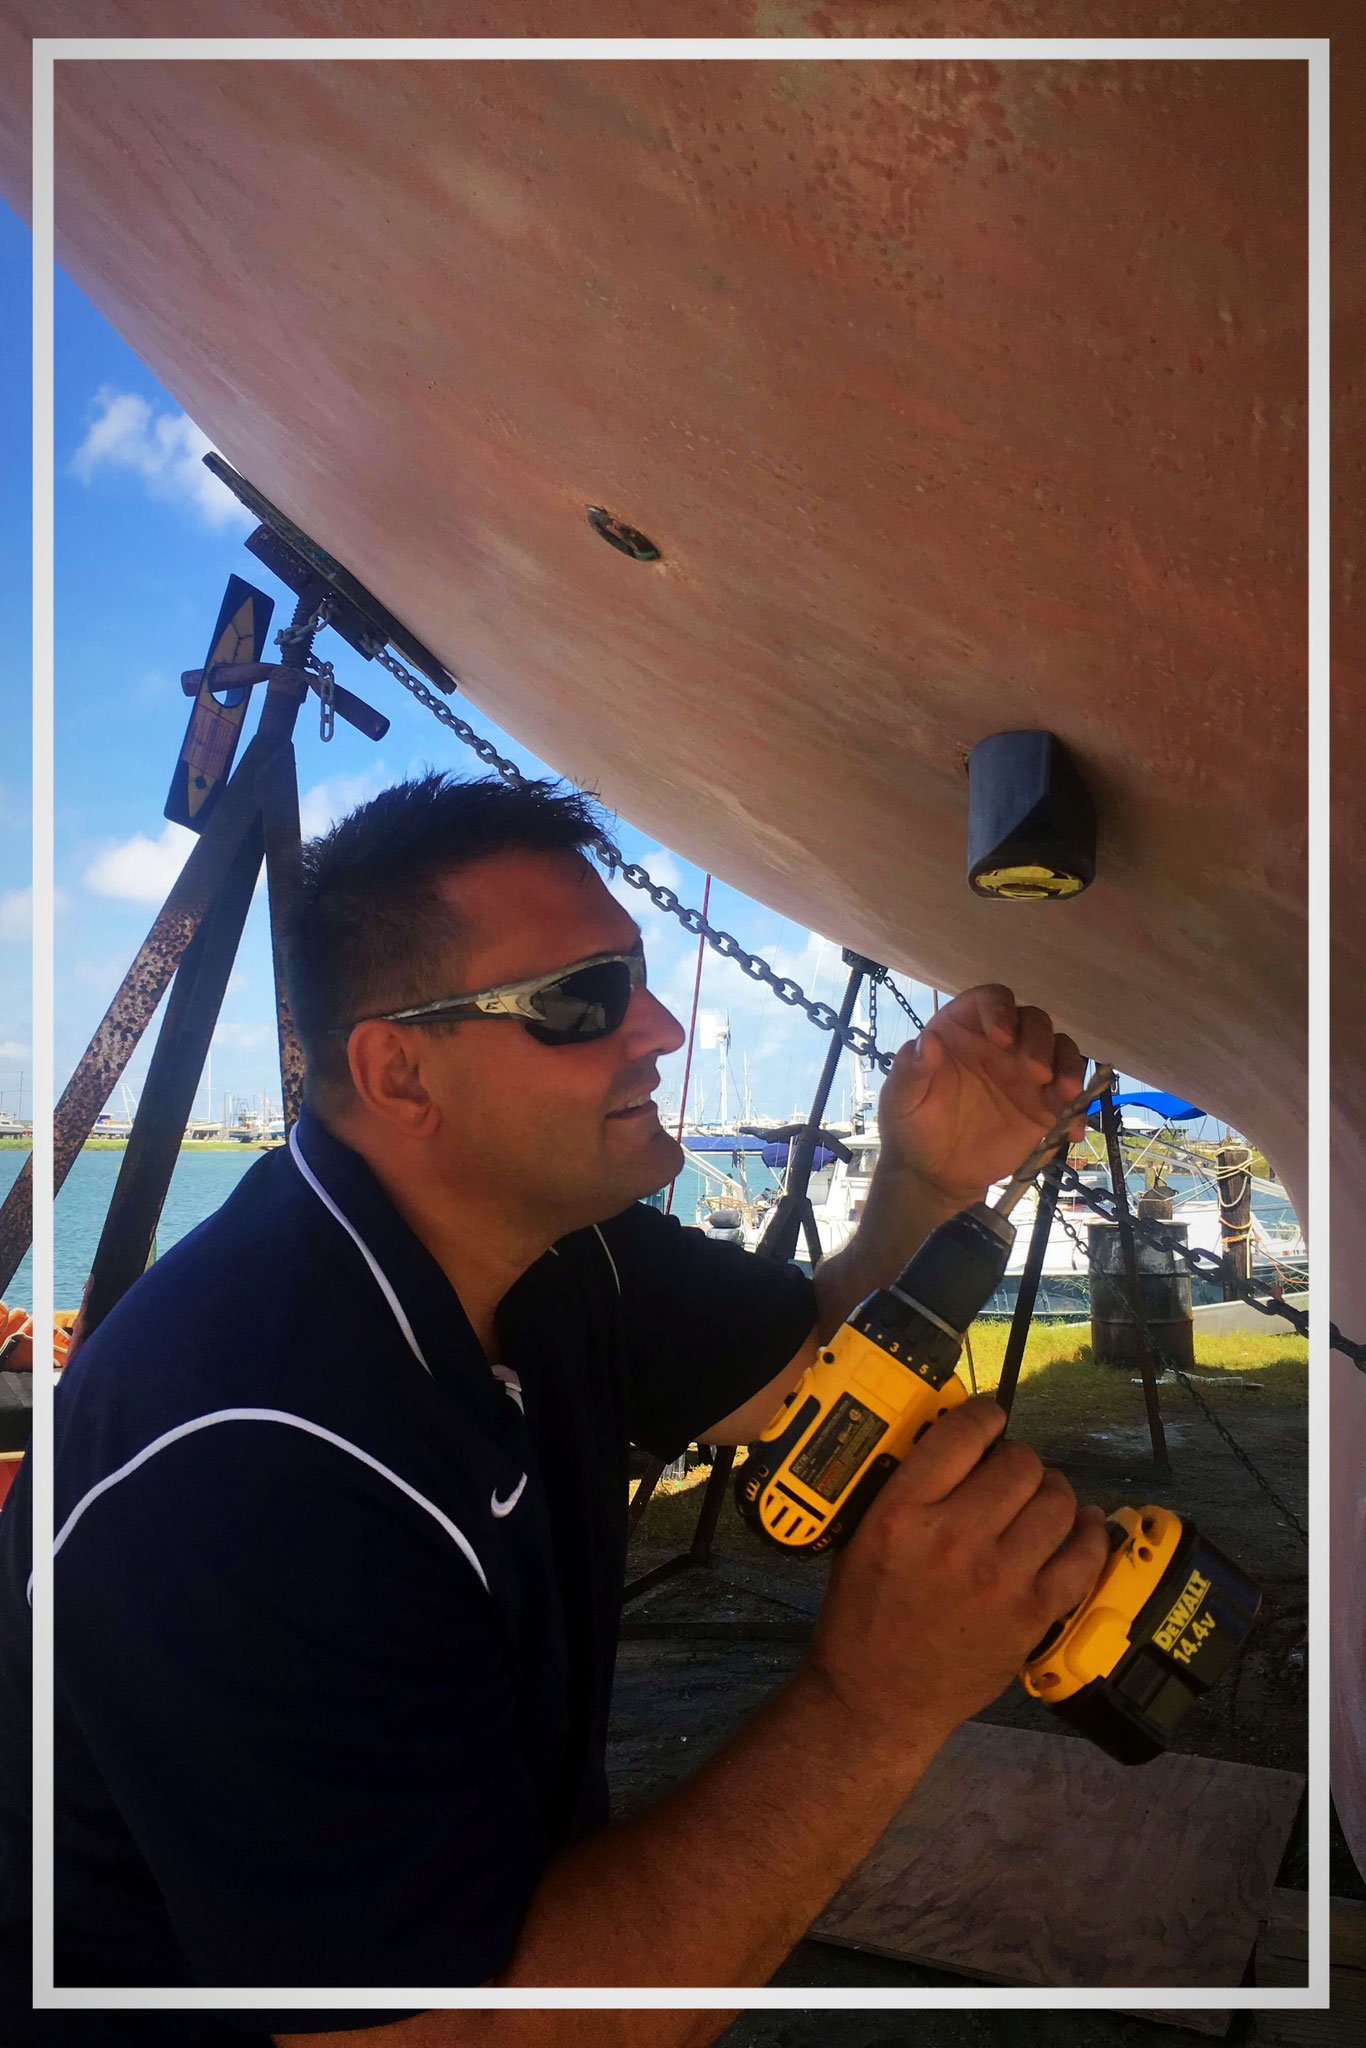 Installing the sonar, which provides data